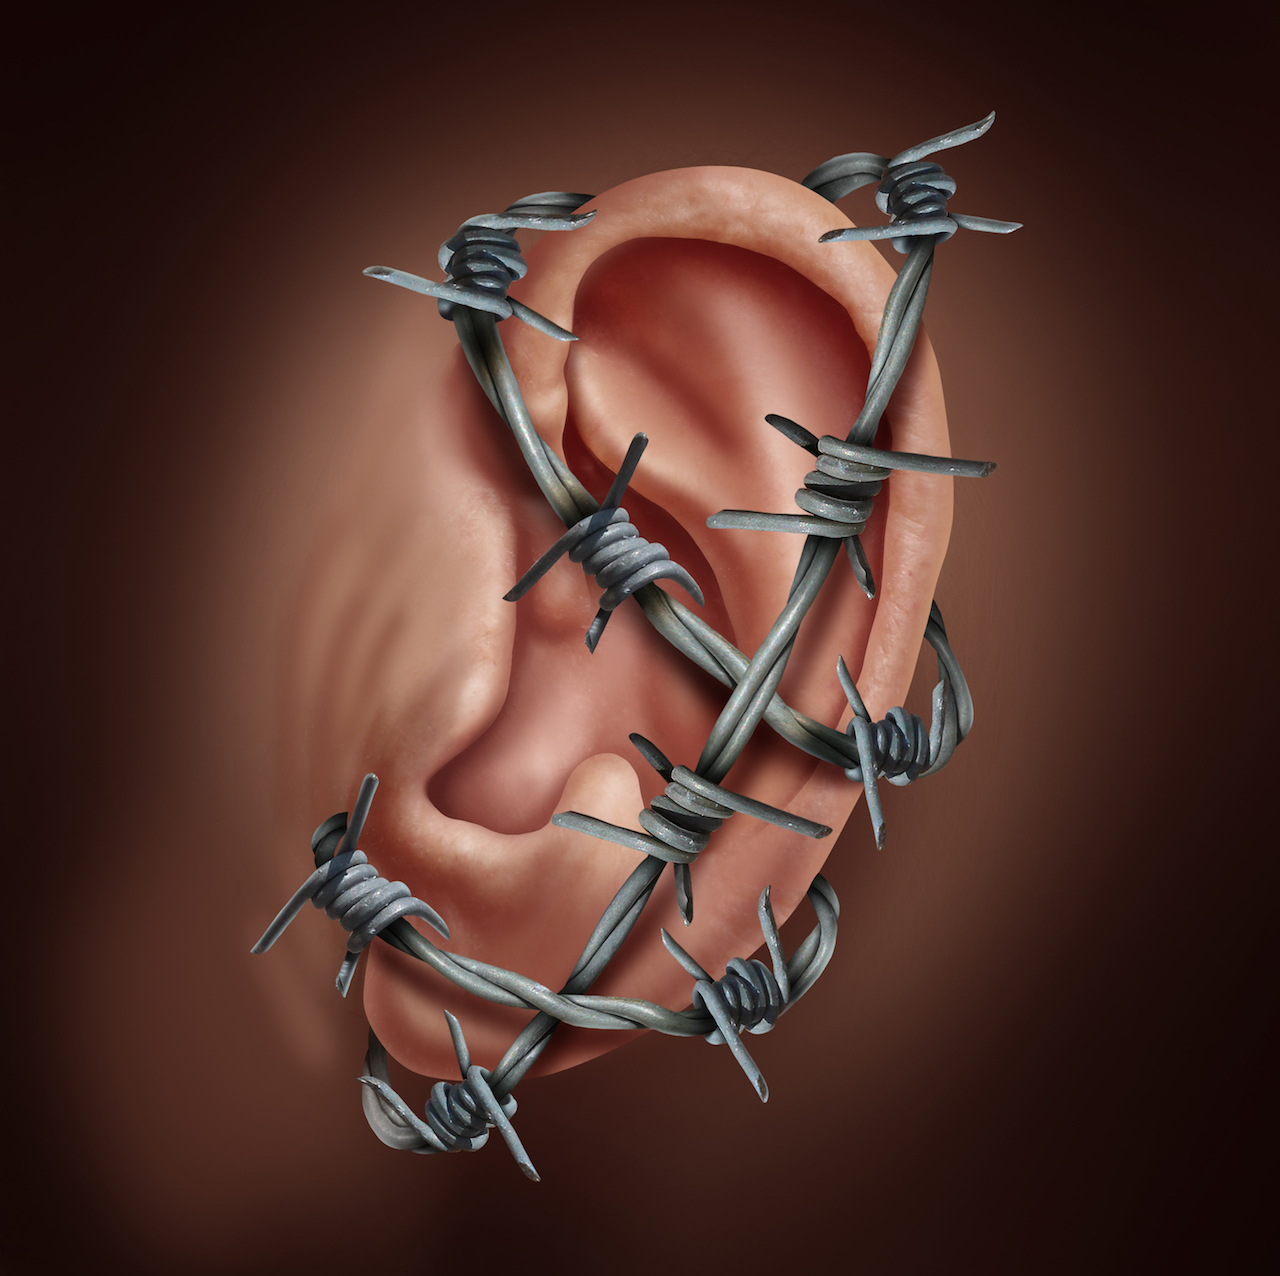 The ins and outs of earache